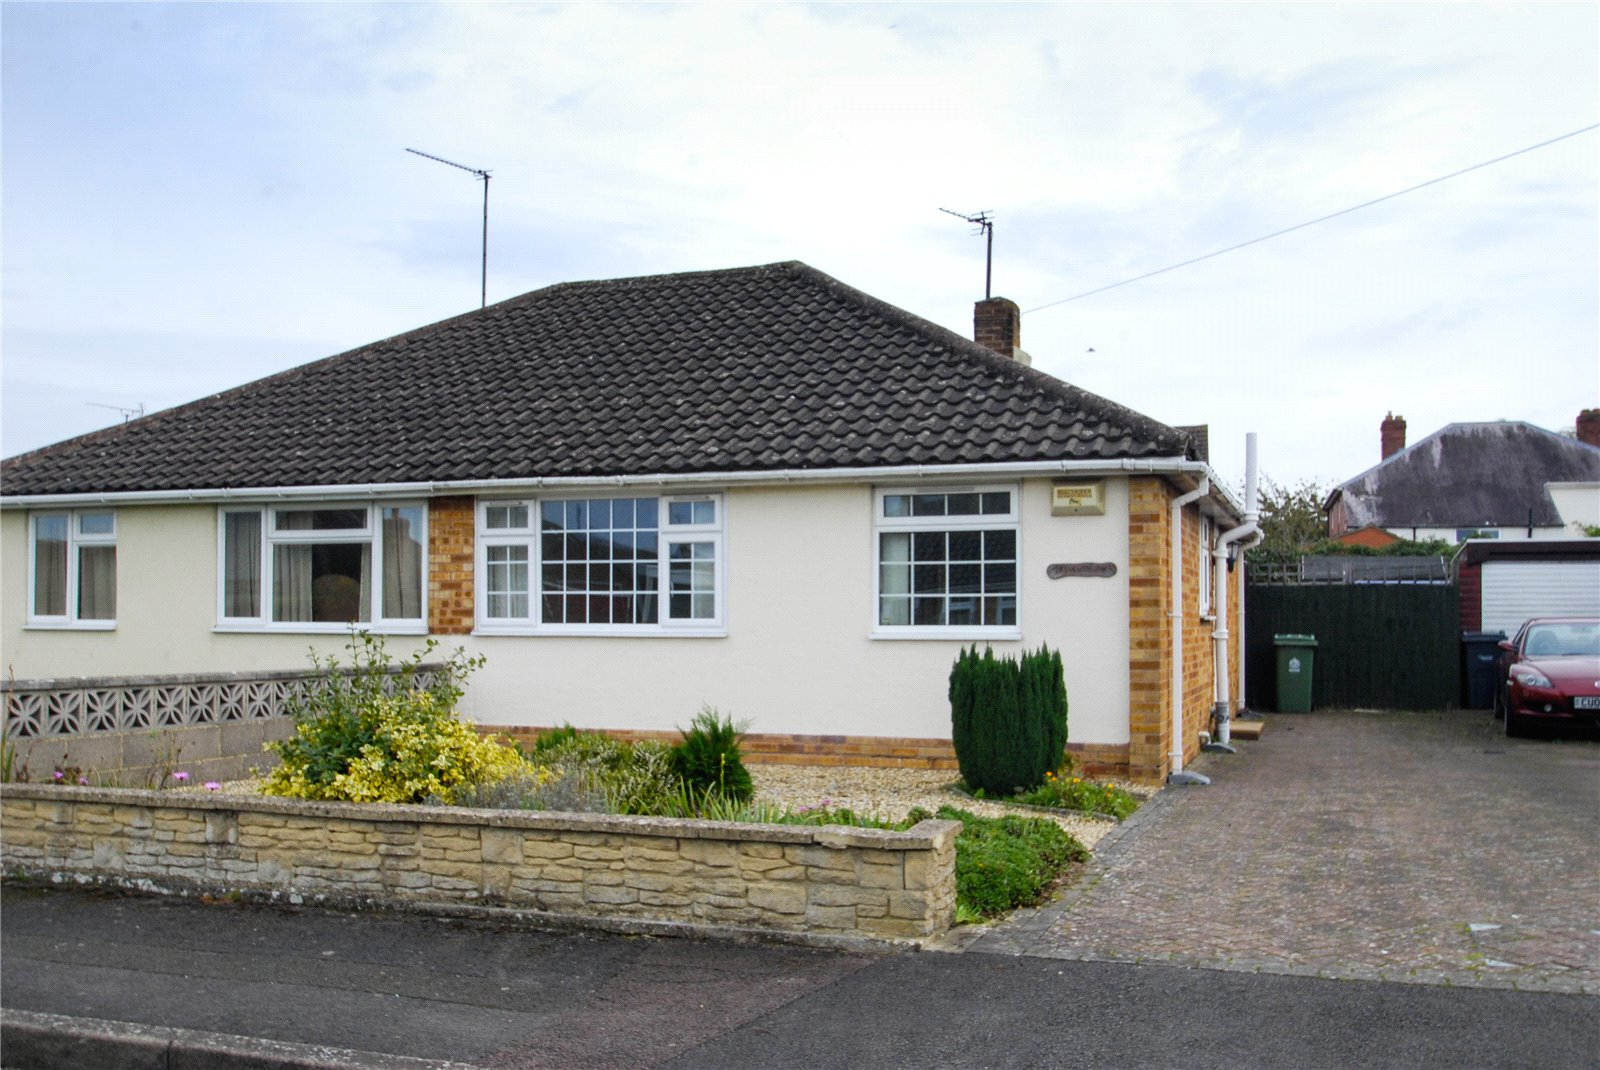 2 Bedrooms Bungalow for sale in Laynes Road Hucclecote Gloucester GL3